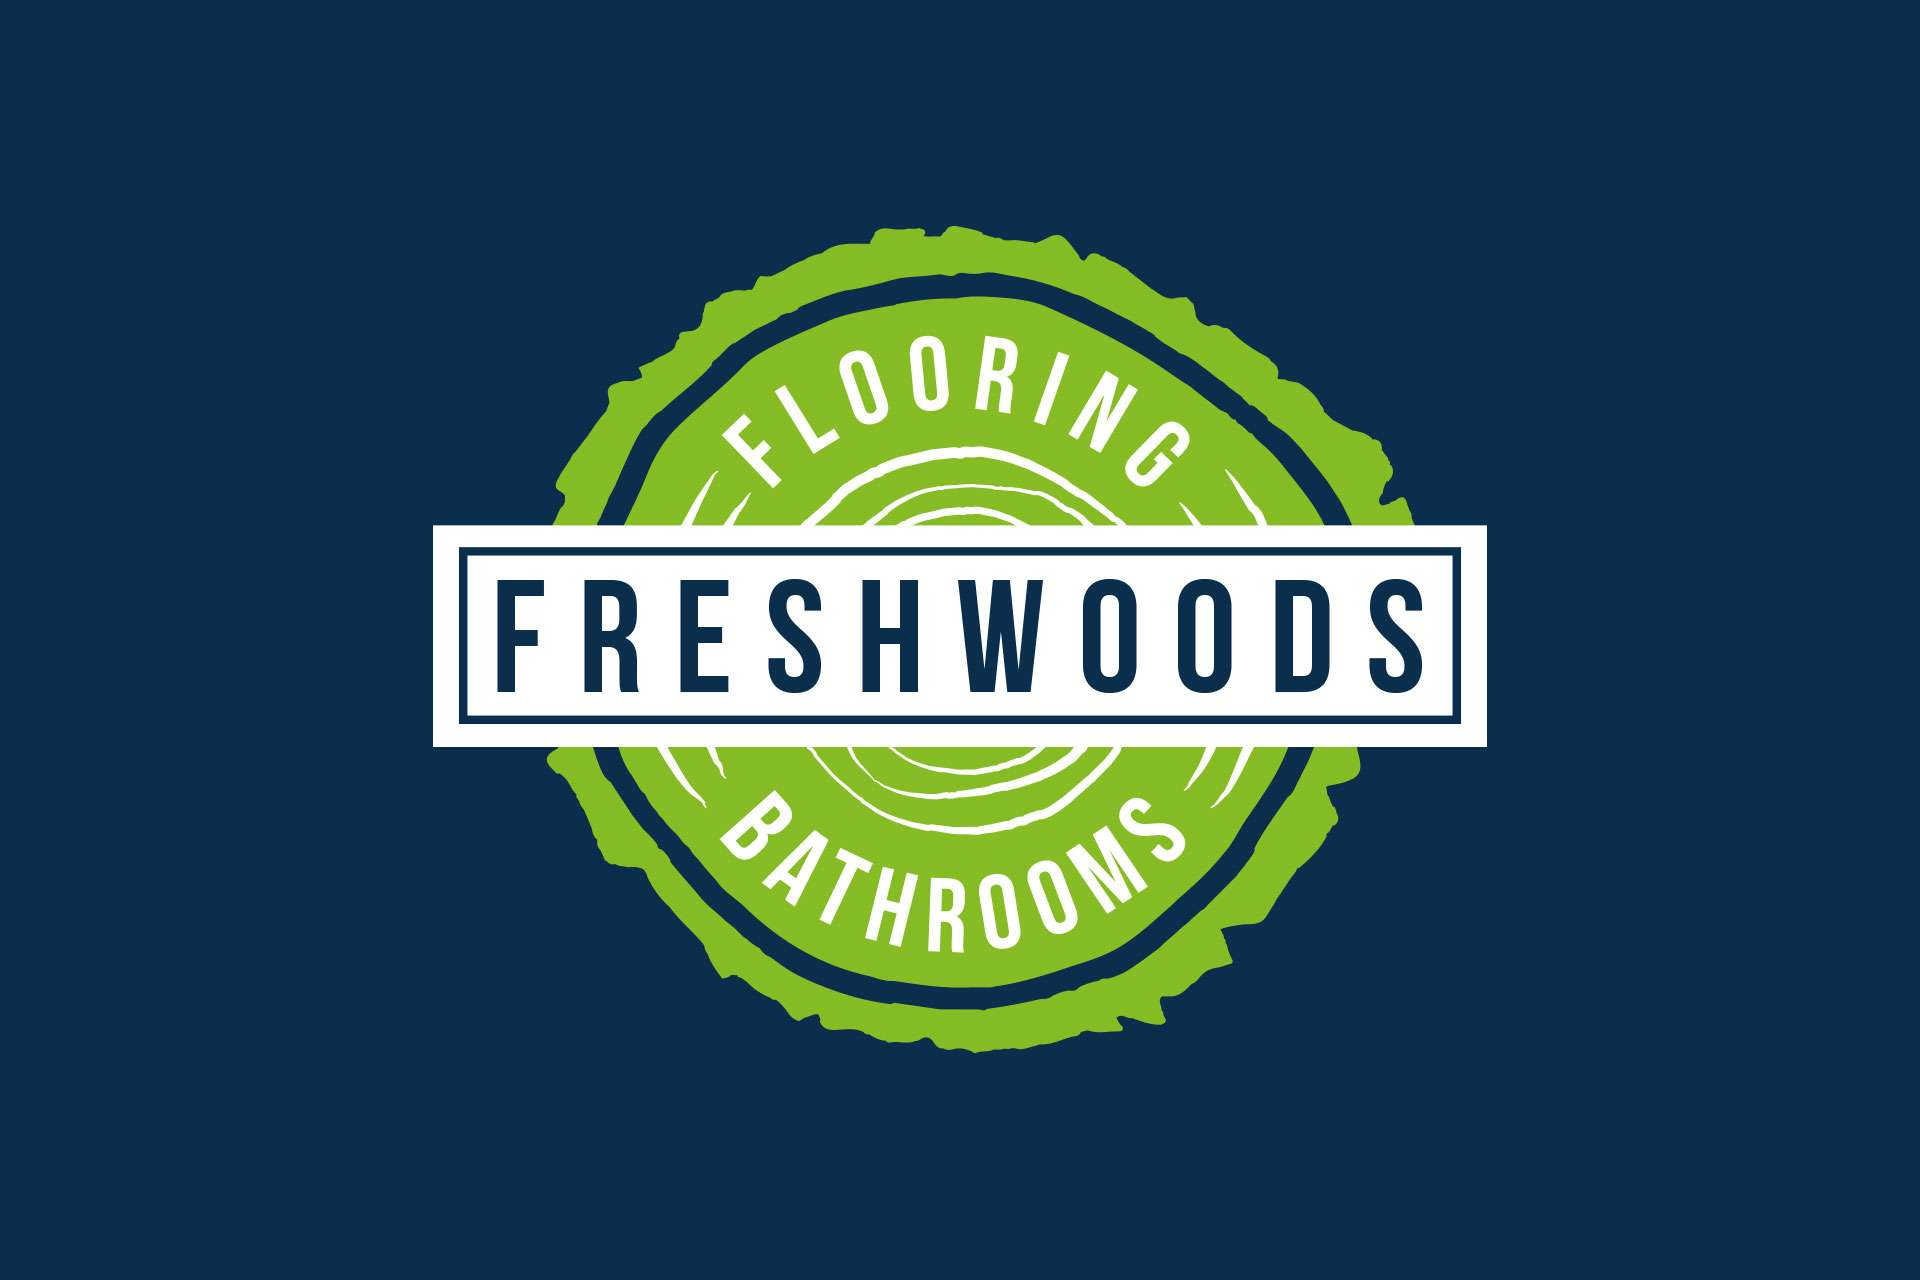 Flooring bathrooms logo design somerset